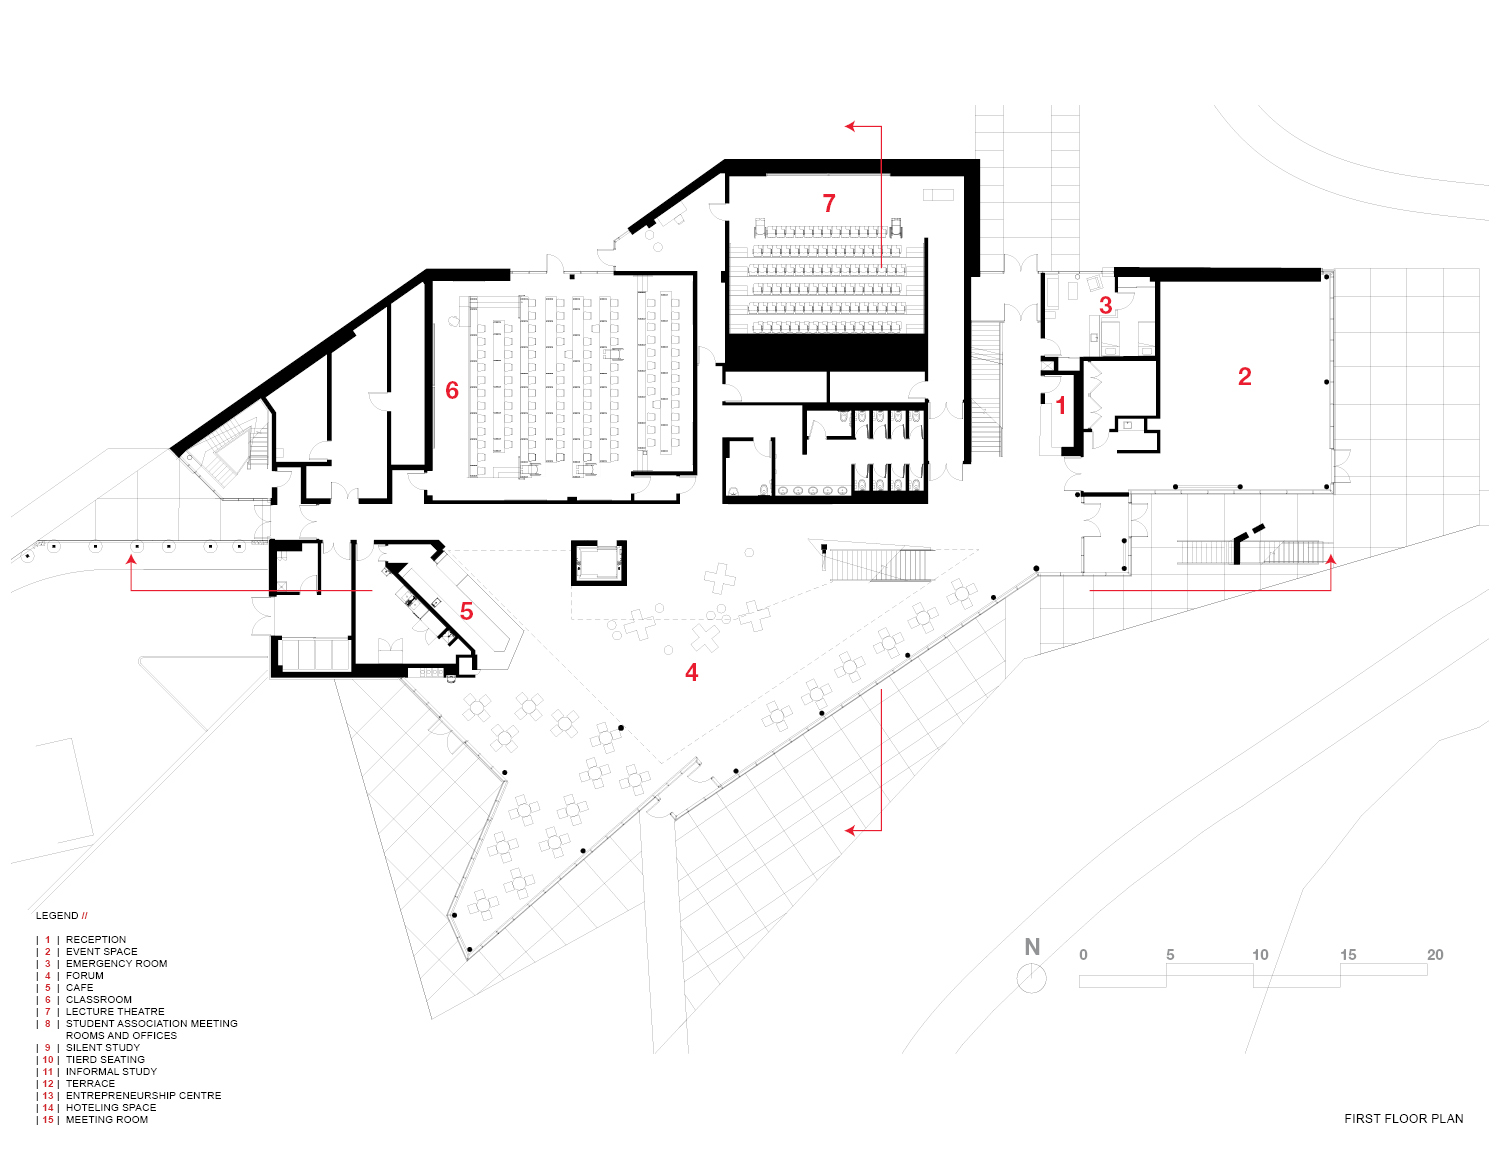 First Floor Plan Teeple Architects Inc.}